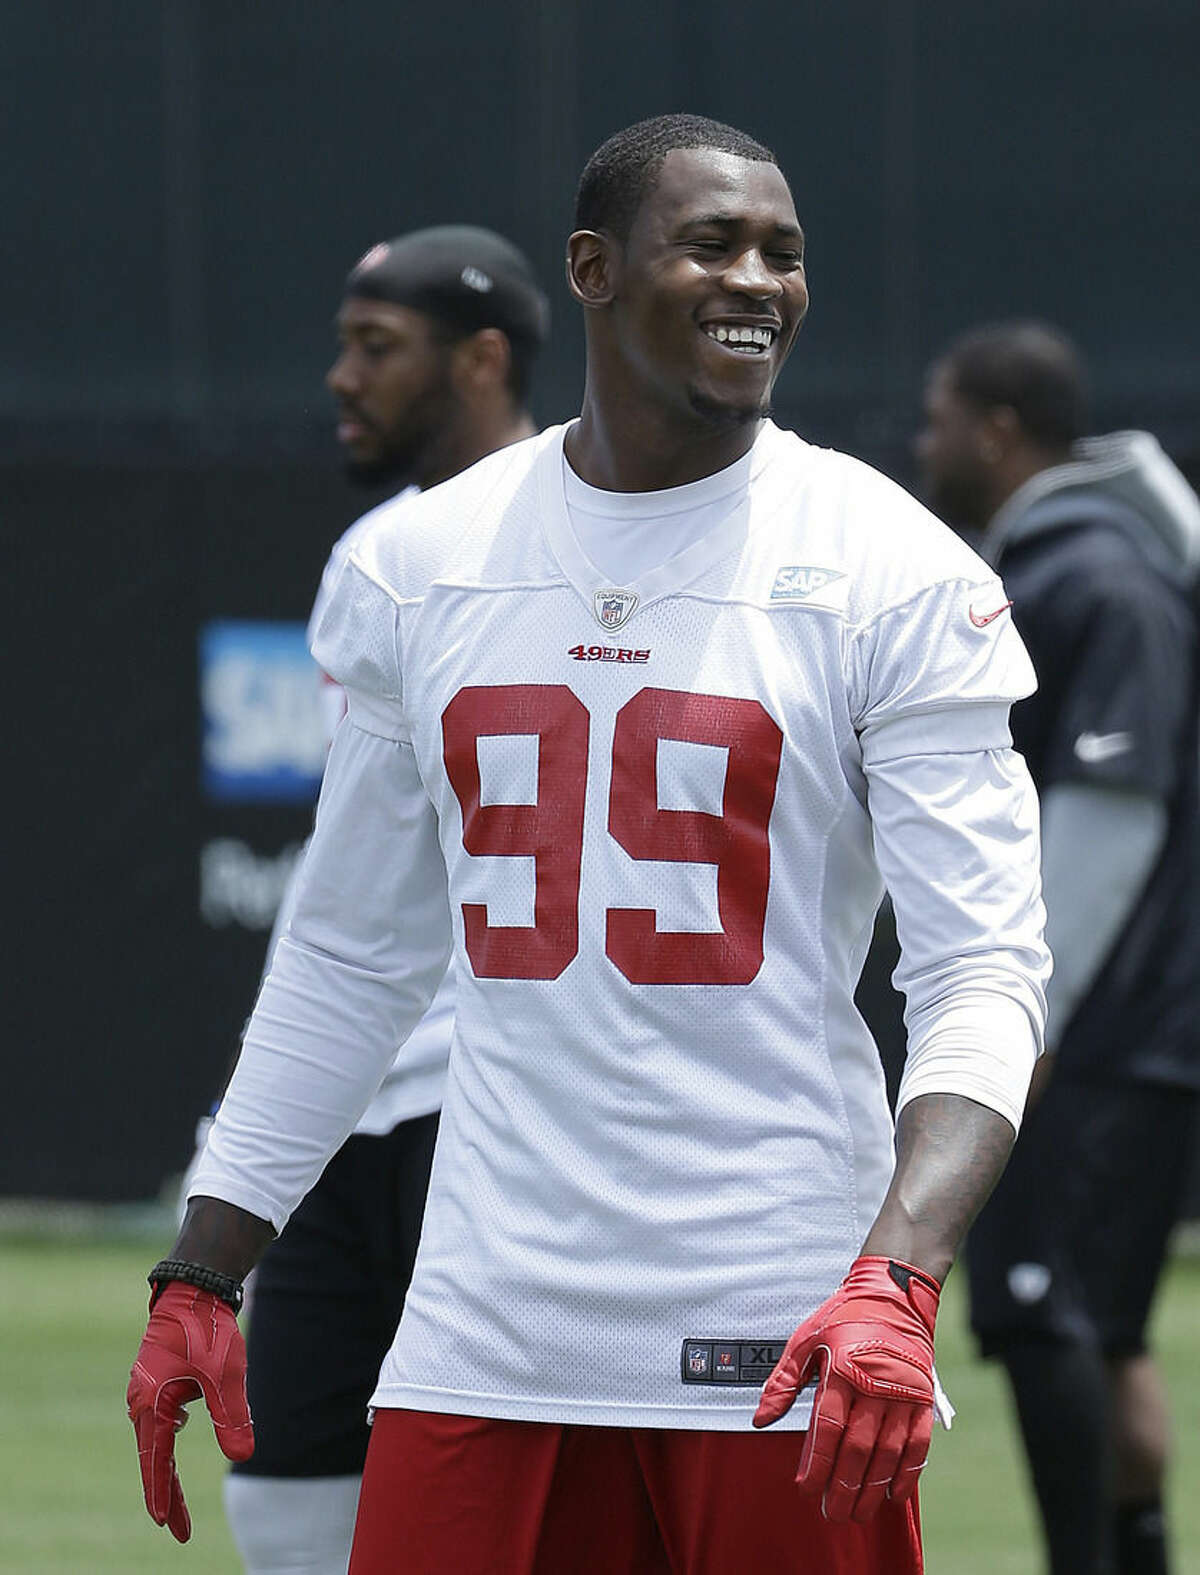 FILE - In this May 29, 2015 file photo, San Francisco 49ers linebacker Aldon Smith (99) smiles during practice at an NFL football facility in Santa Clara, Calif. Police in Northern California have arrested and accused Smith of hit and run, drunken driving and vandalism on Thursday, Aug. 6, 2015. (AP Photo/Jeff Chiu, File)